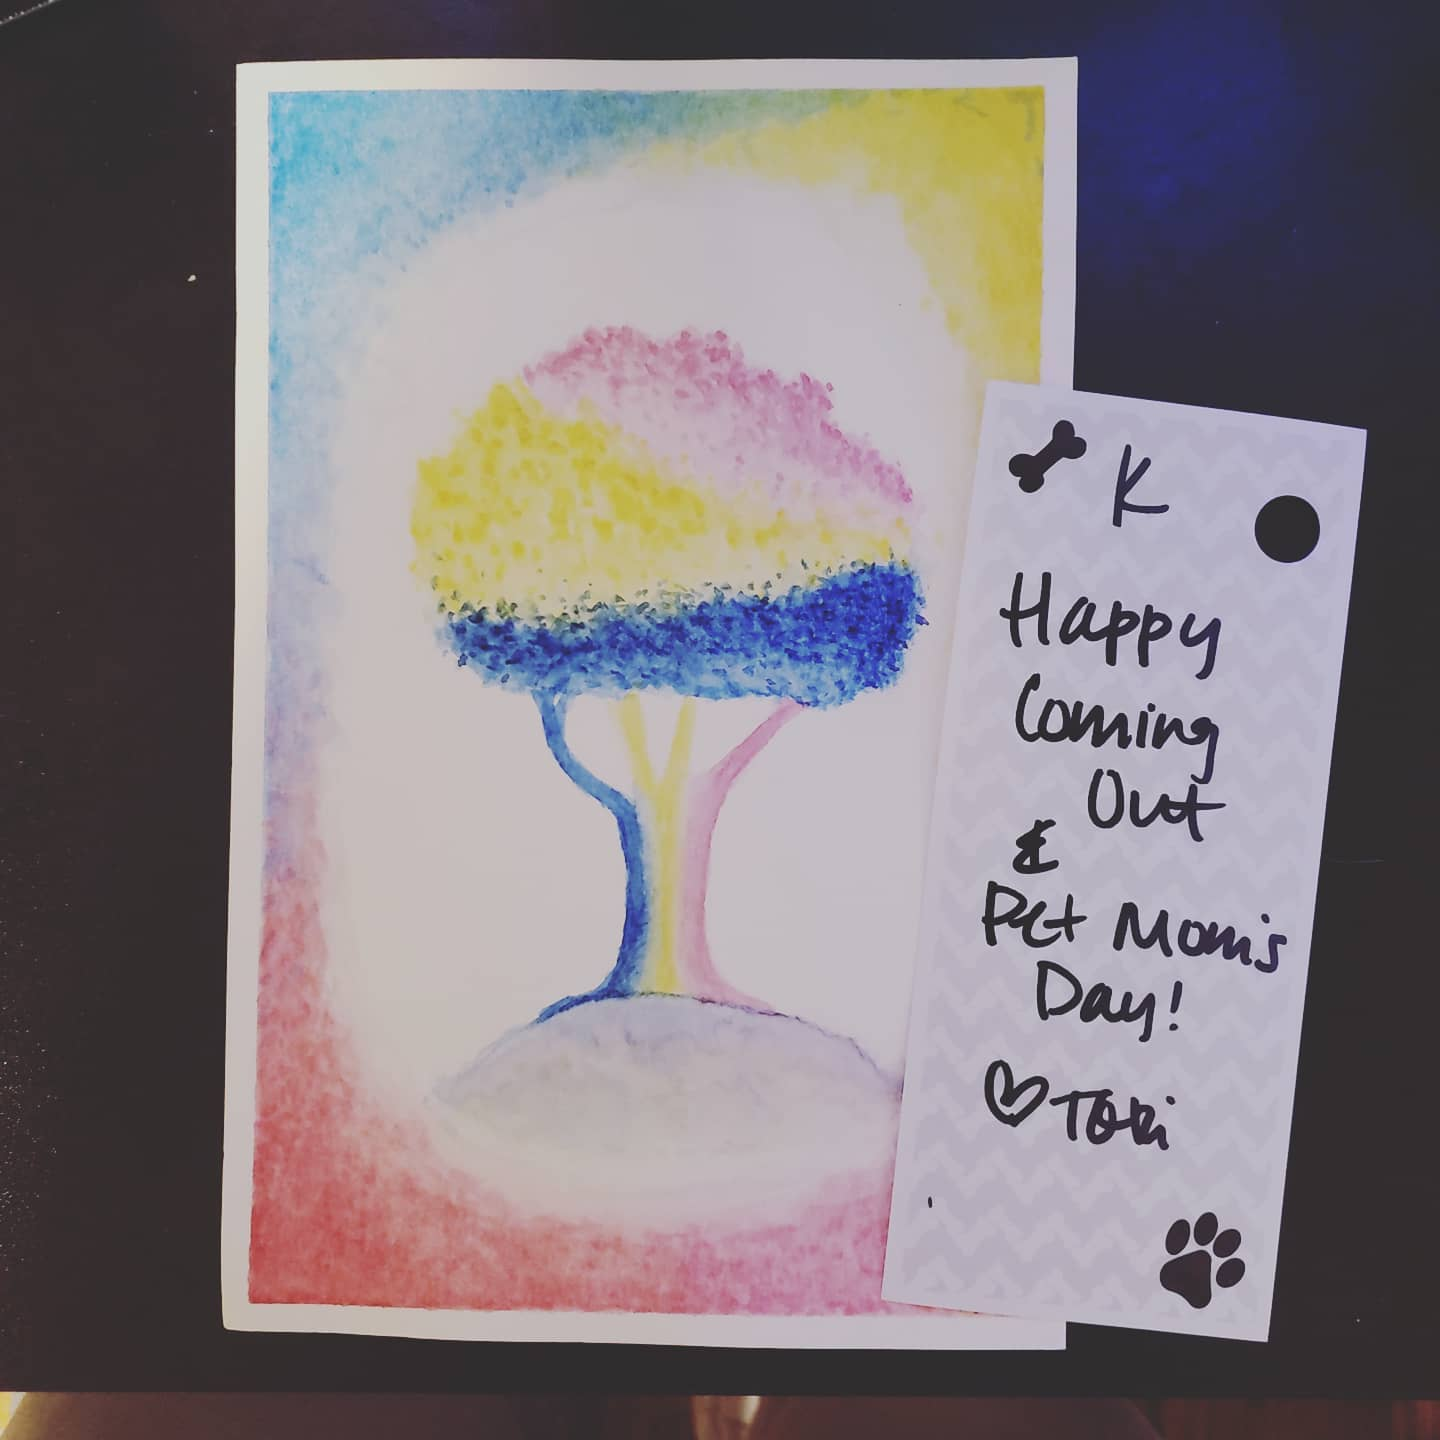 A card with an illustration of a person with short curly rainbow-colored hair that reads Happy Coming Out